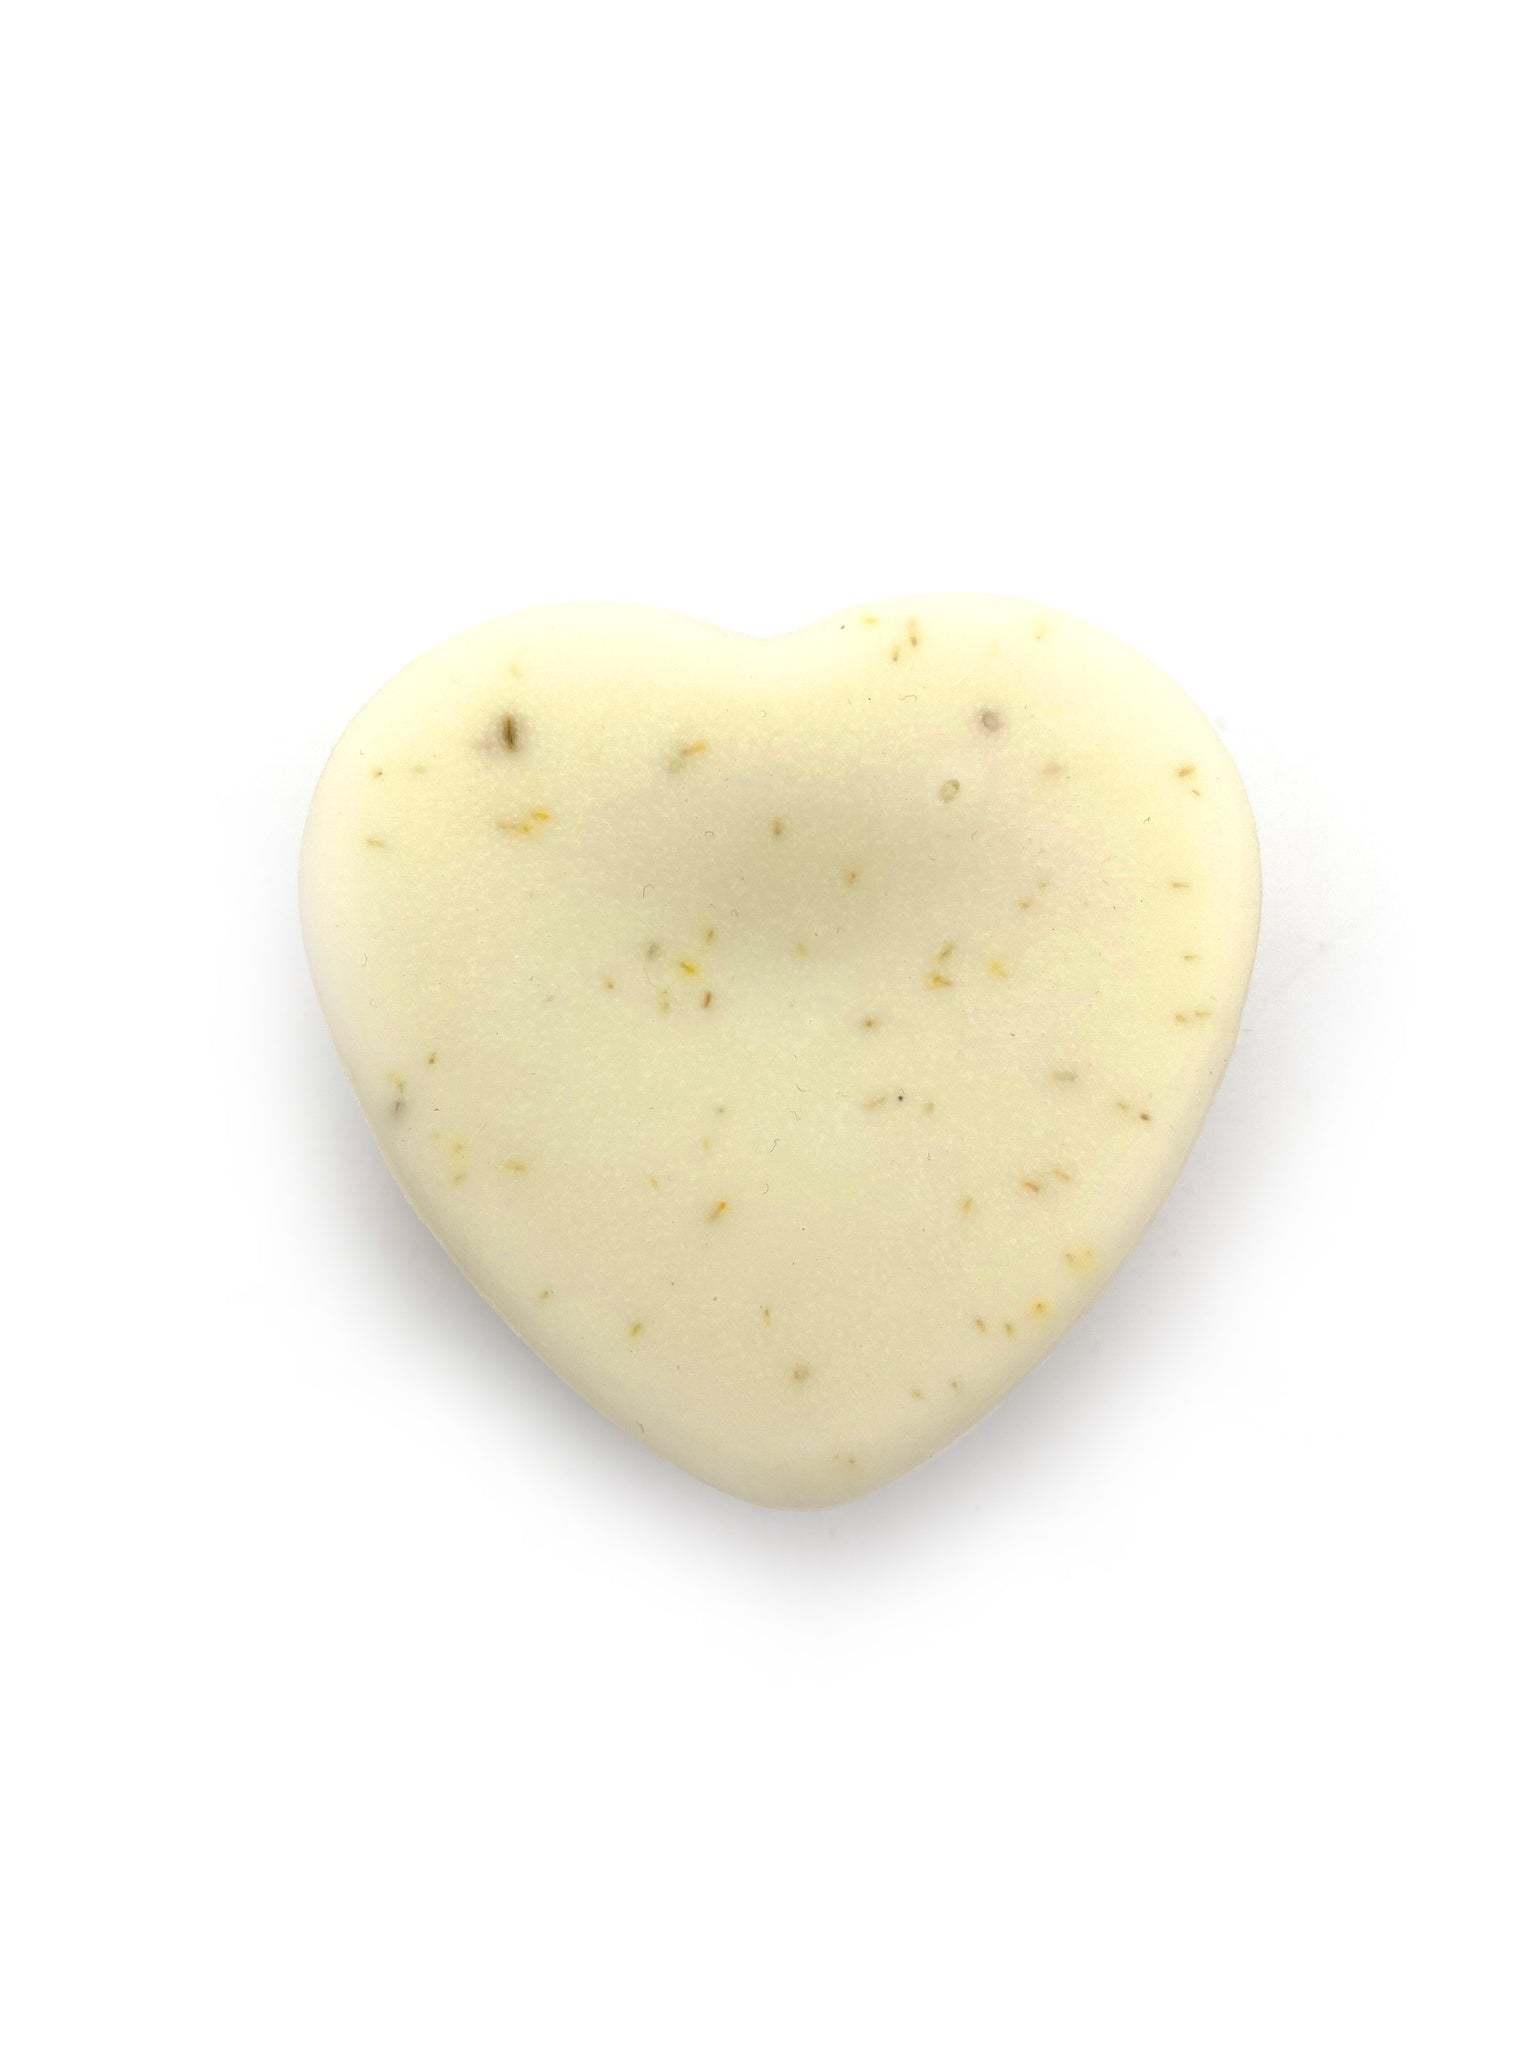 Lavender Chamomile Conditioner Bar 3oz heart